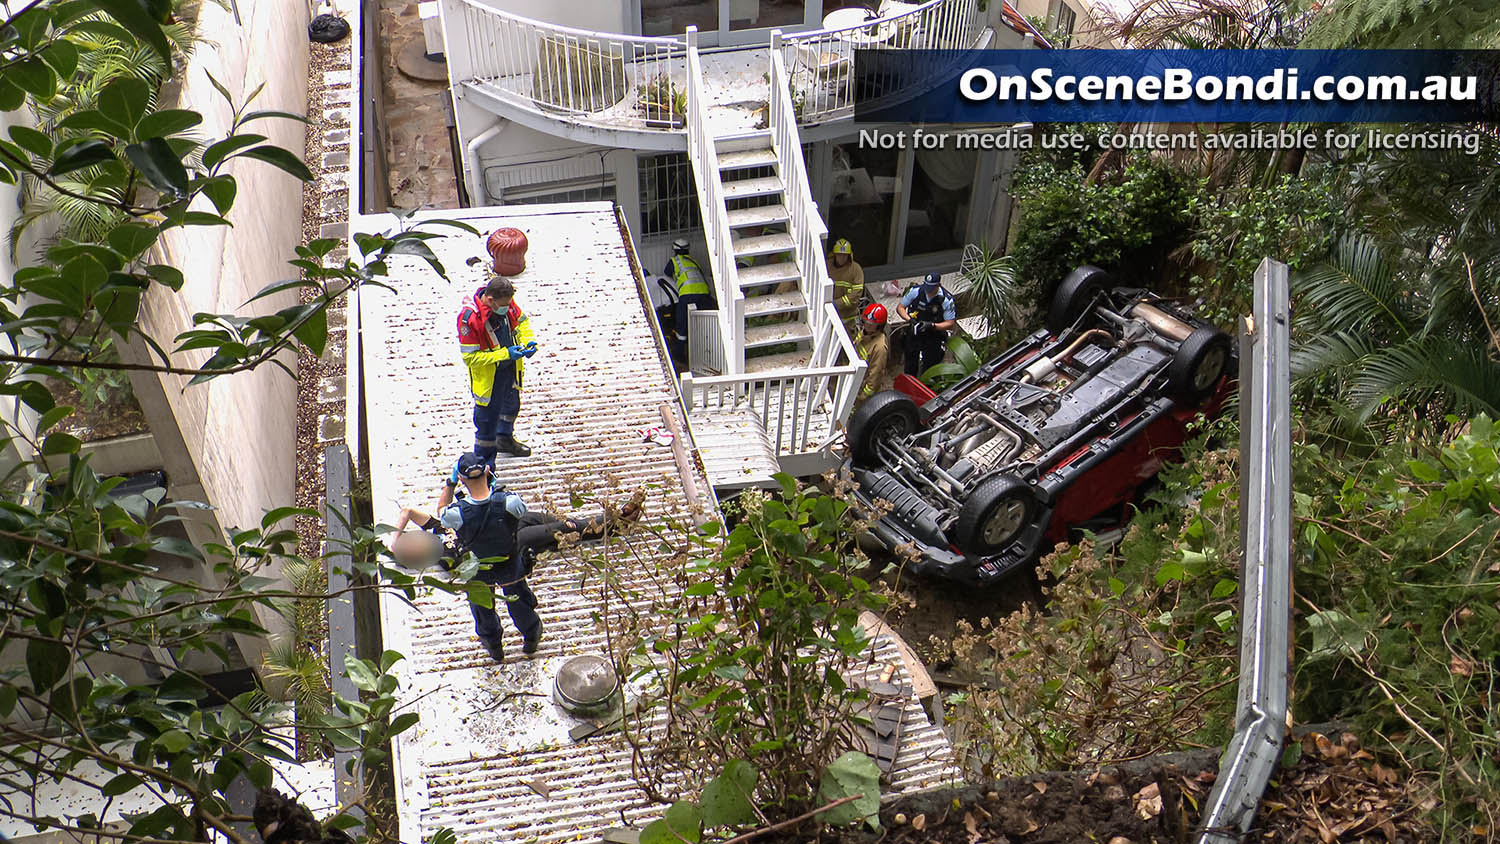 Two men escape death after car plunges 10 metres over a cliff in Bellevue Hill